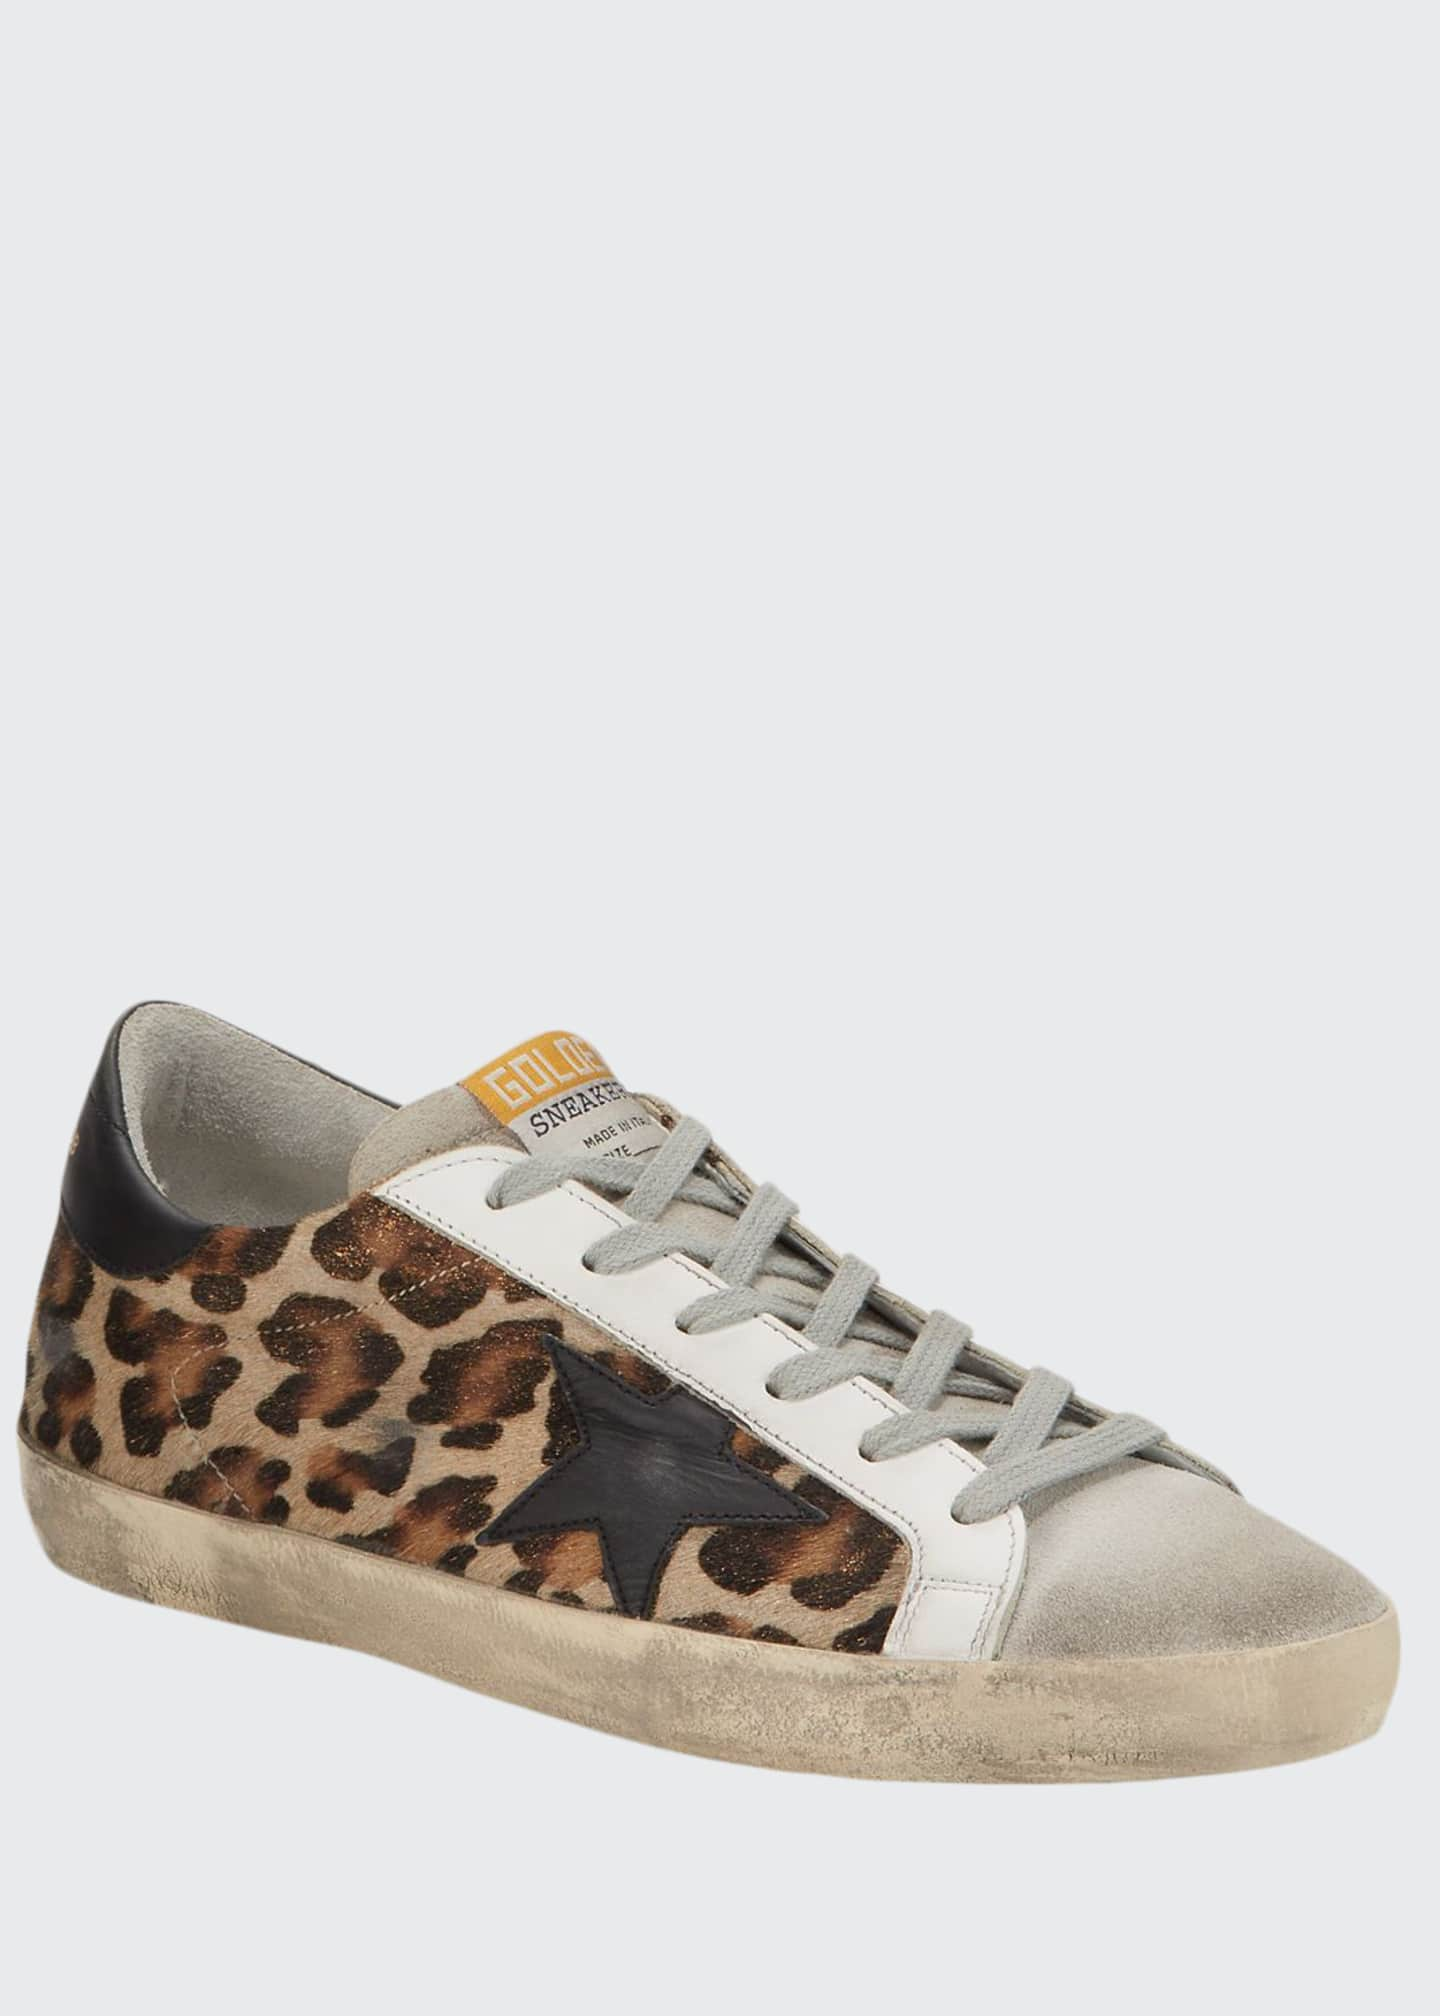 Golden Goose Superstar Leopard Calf Hair Sneakers